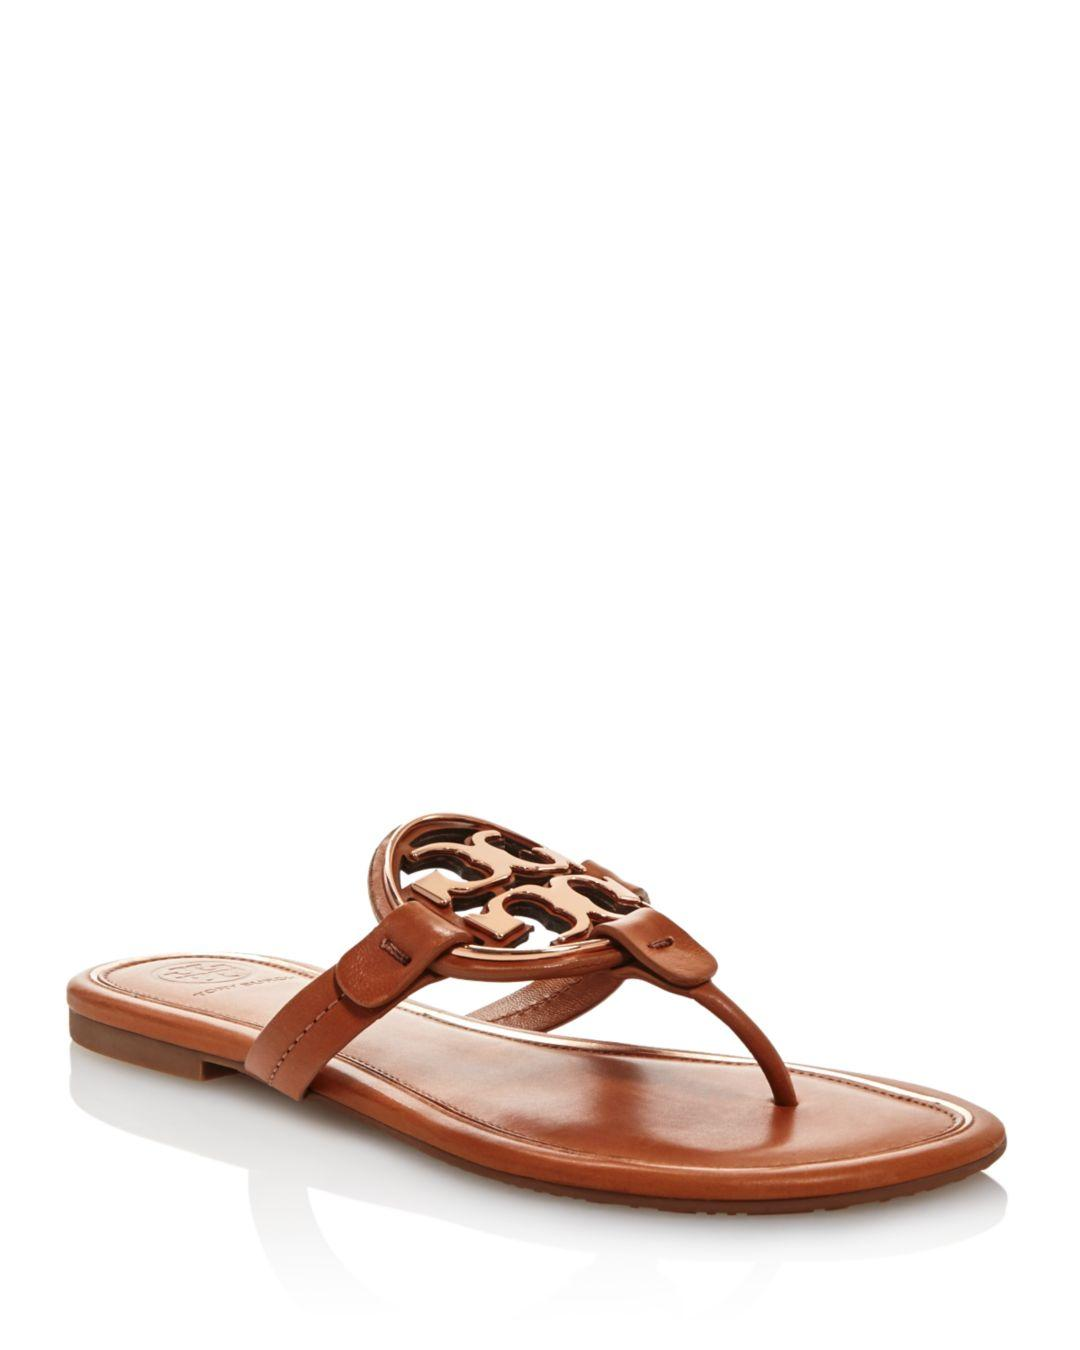 5a2216ae98e1 Tory Burch Women s Metal Miller Leather Thong Sandals - Lyst